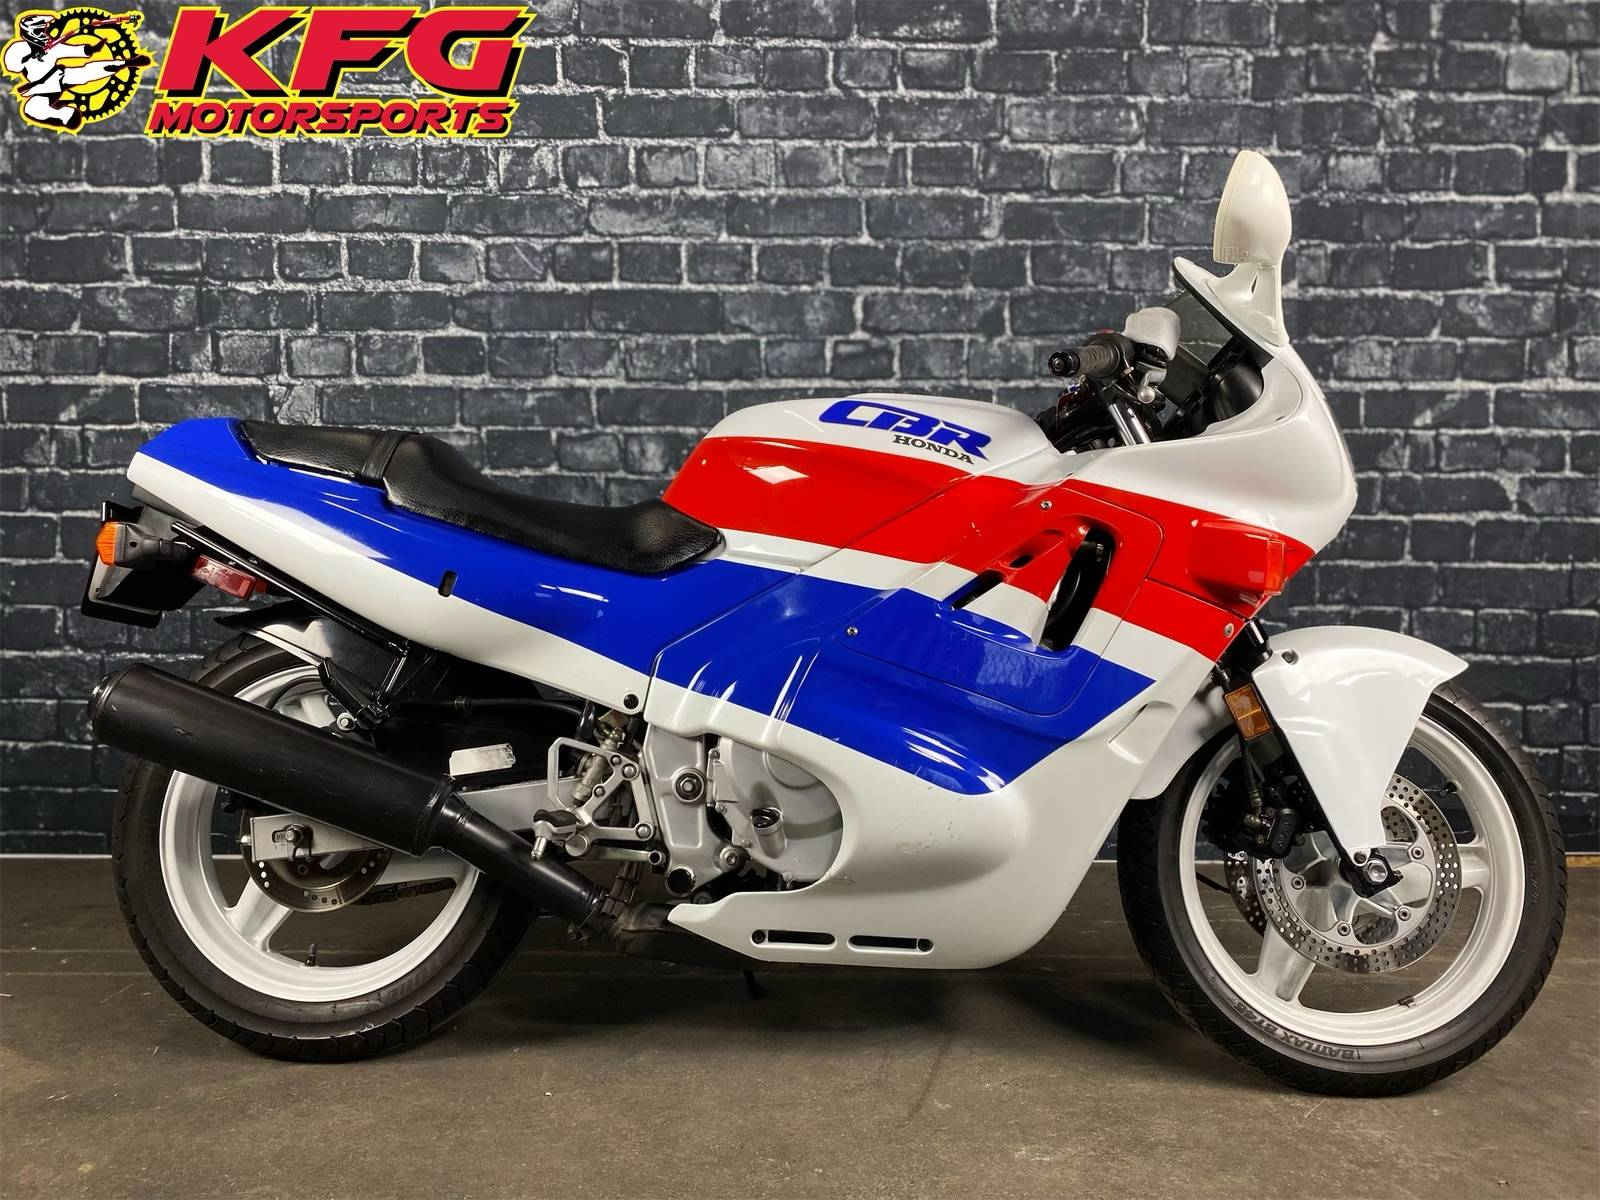 1989 Honda CBR600 in Auburn, Washington - Photo 1